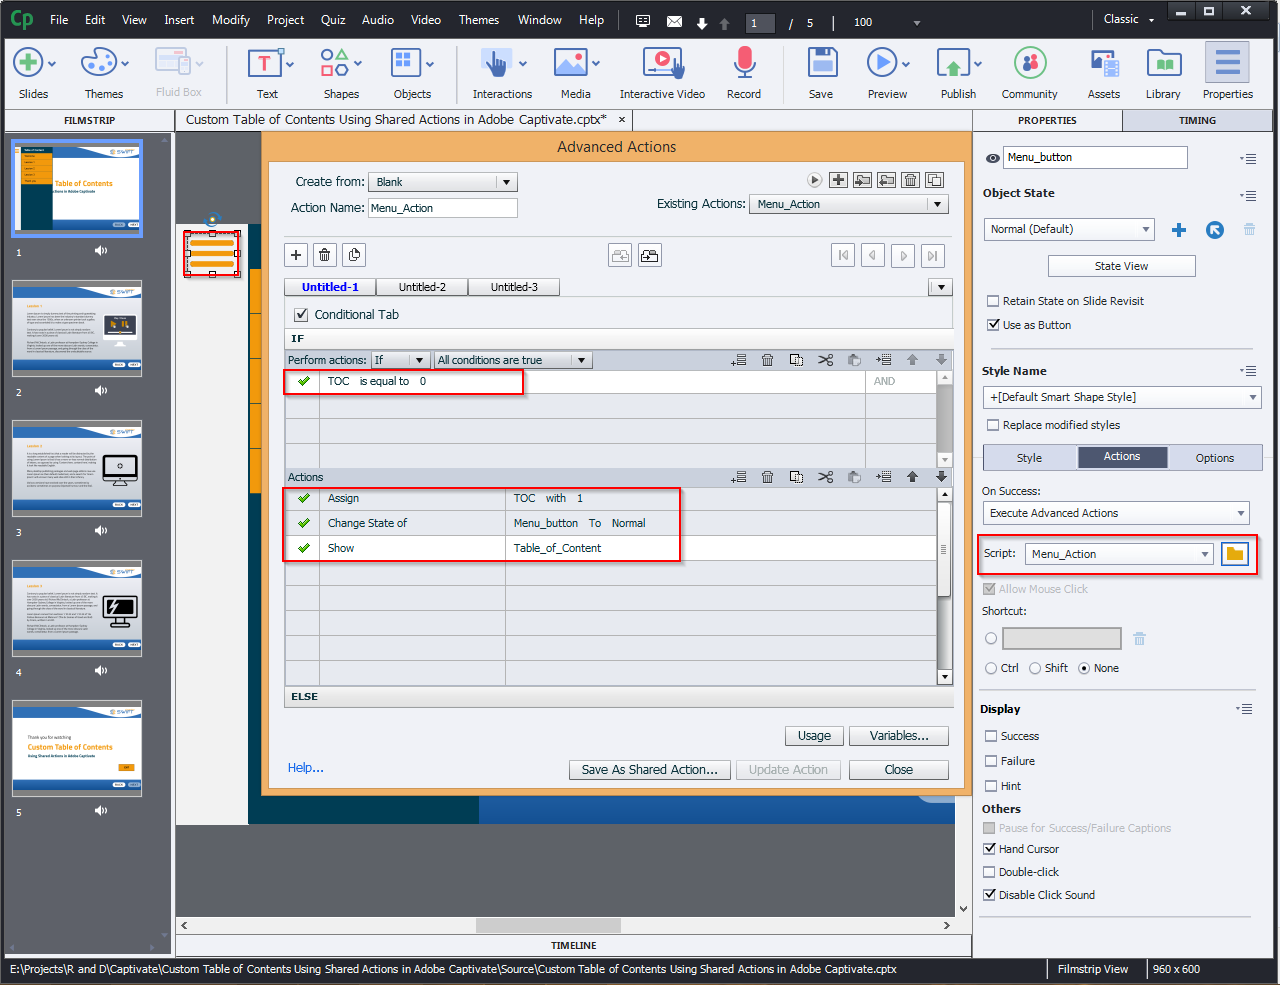 Contents Using Shared Actions in Adobe Captivate 2019 4